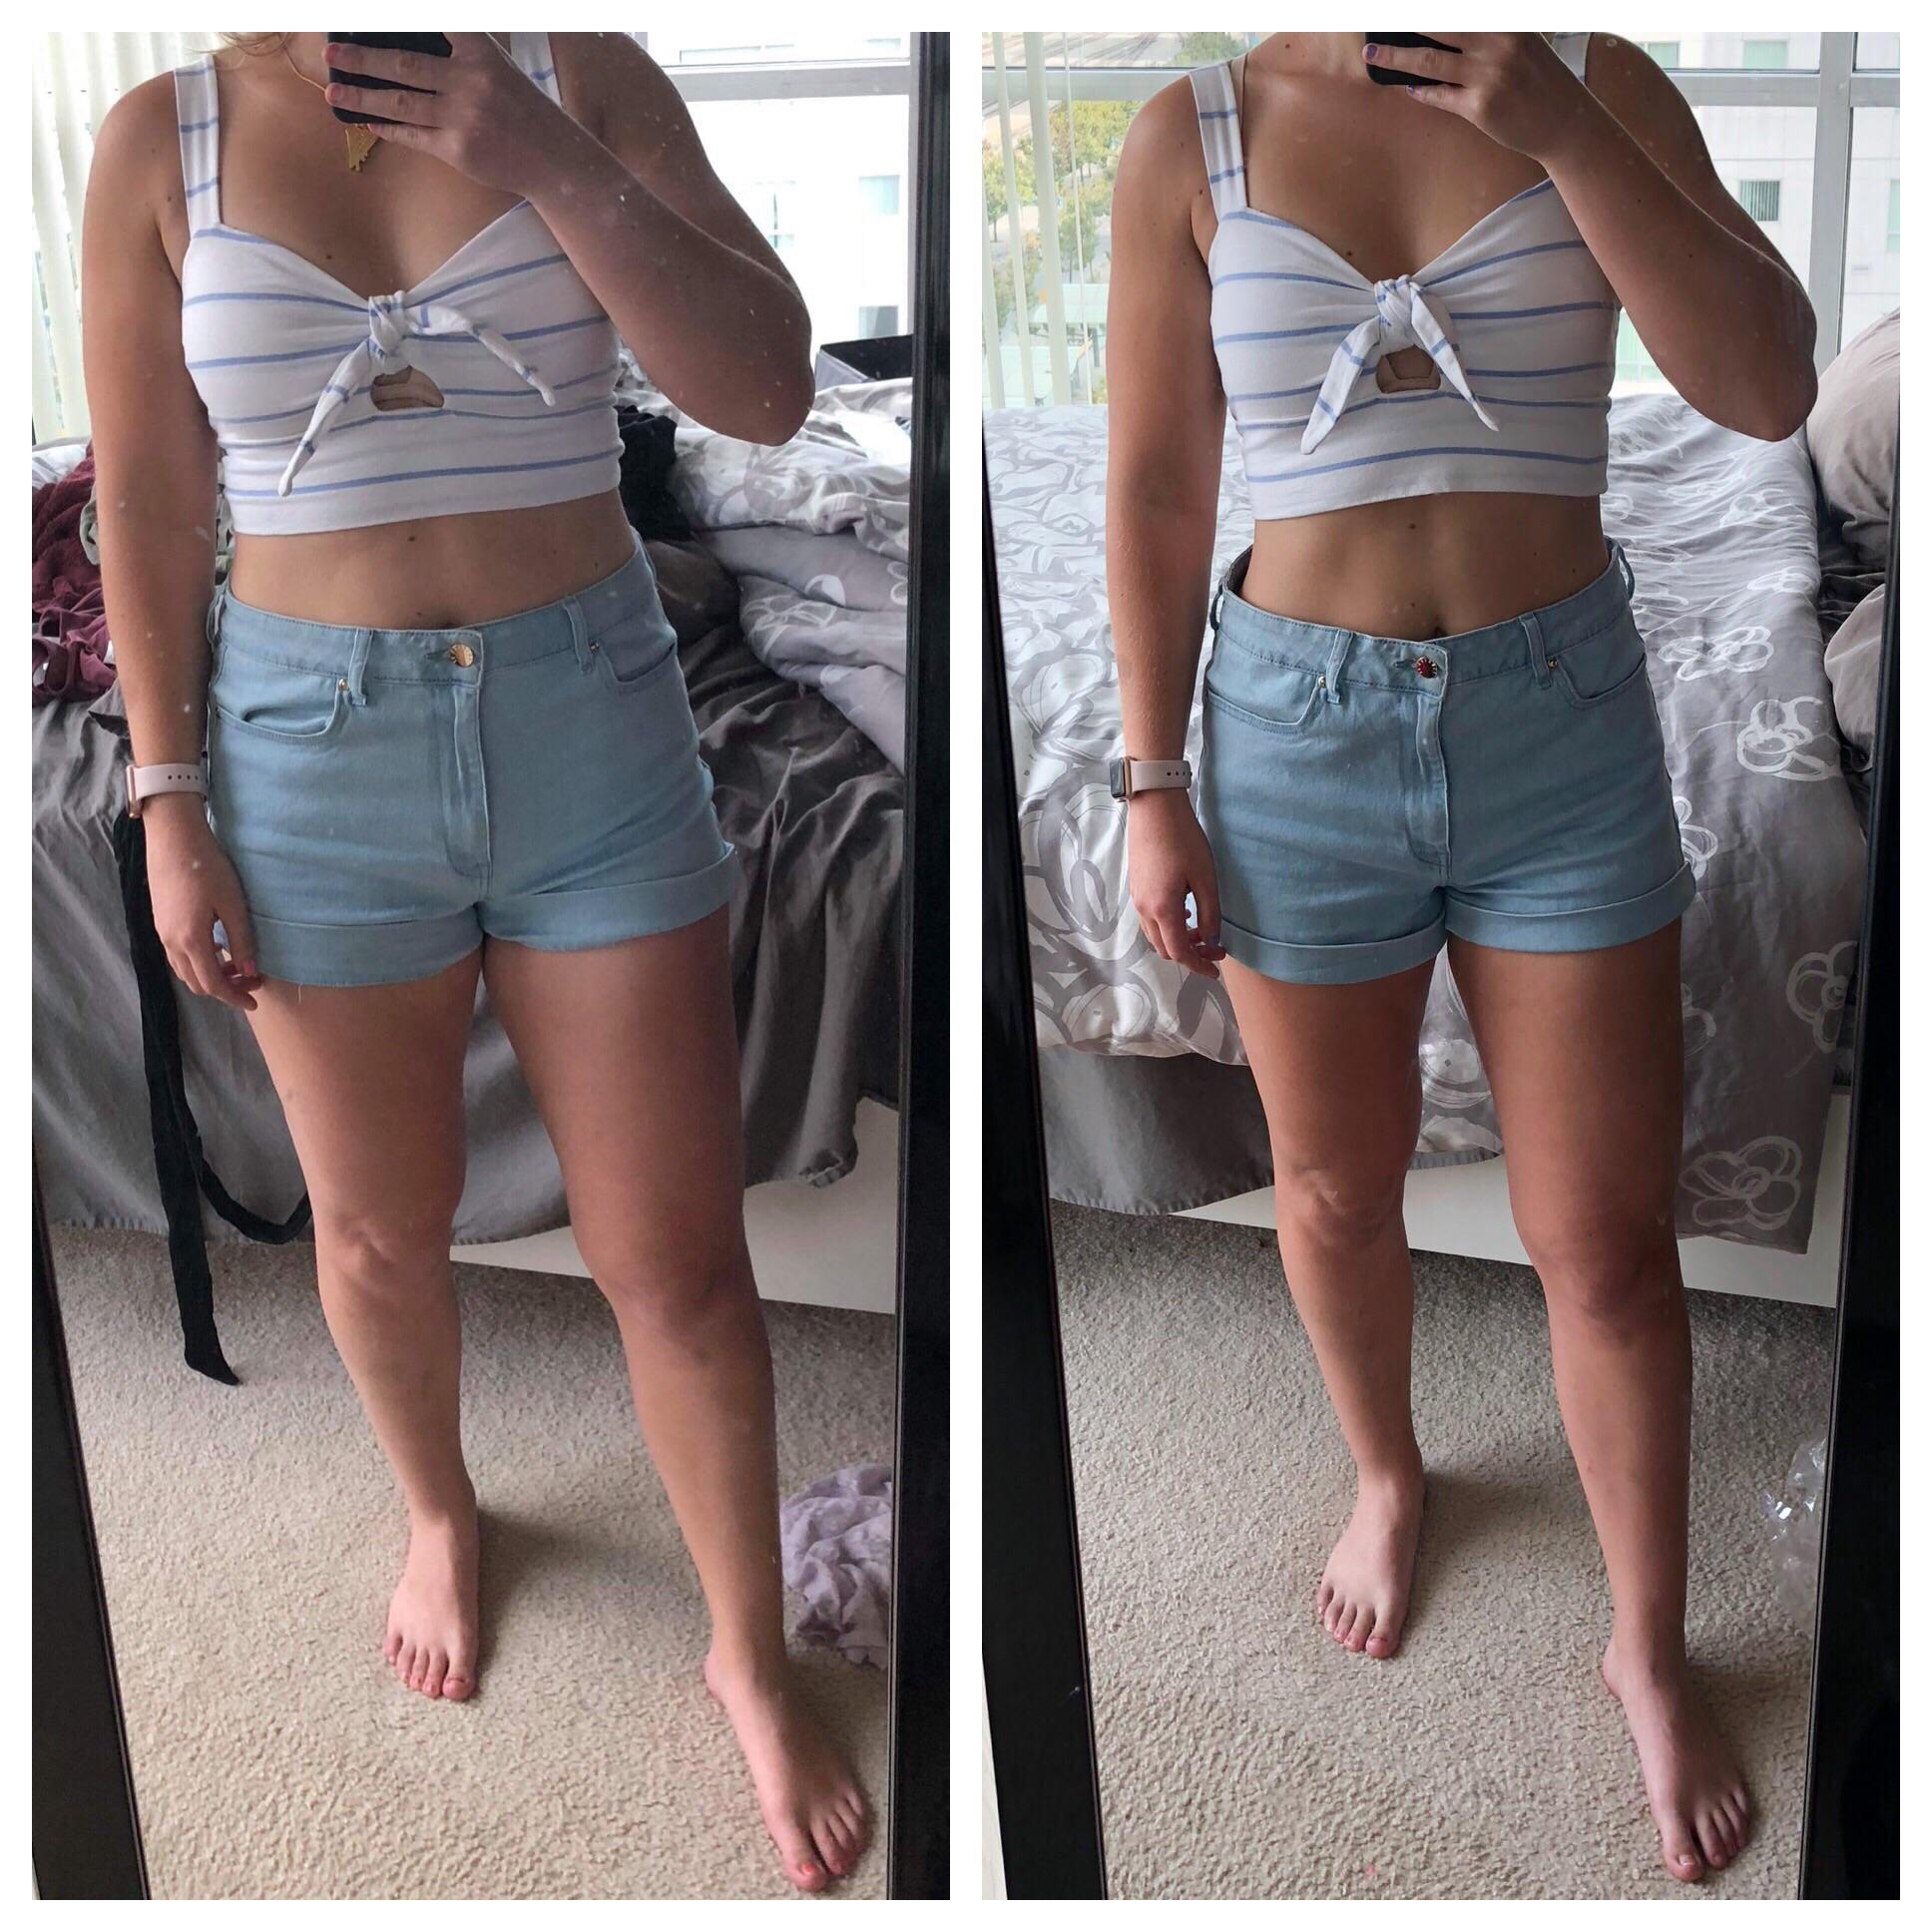 10 lbs Fat Loss Before and After 5 foot 6 Female 150 lbs to 140 lbs